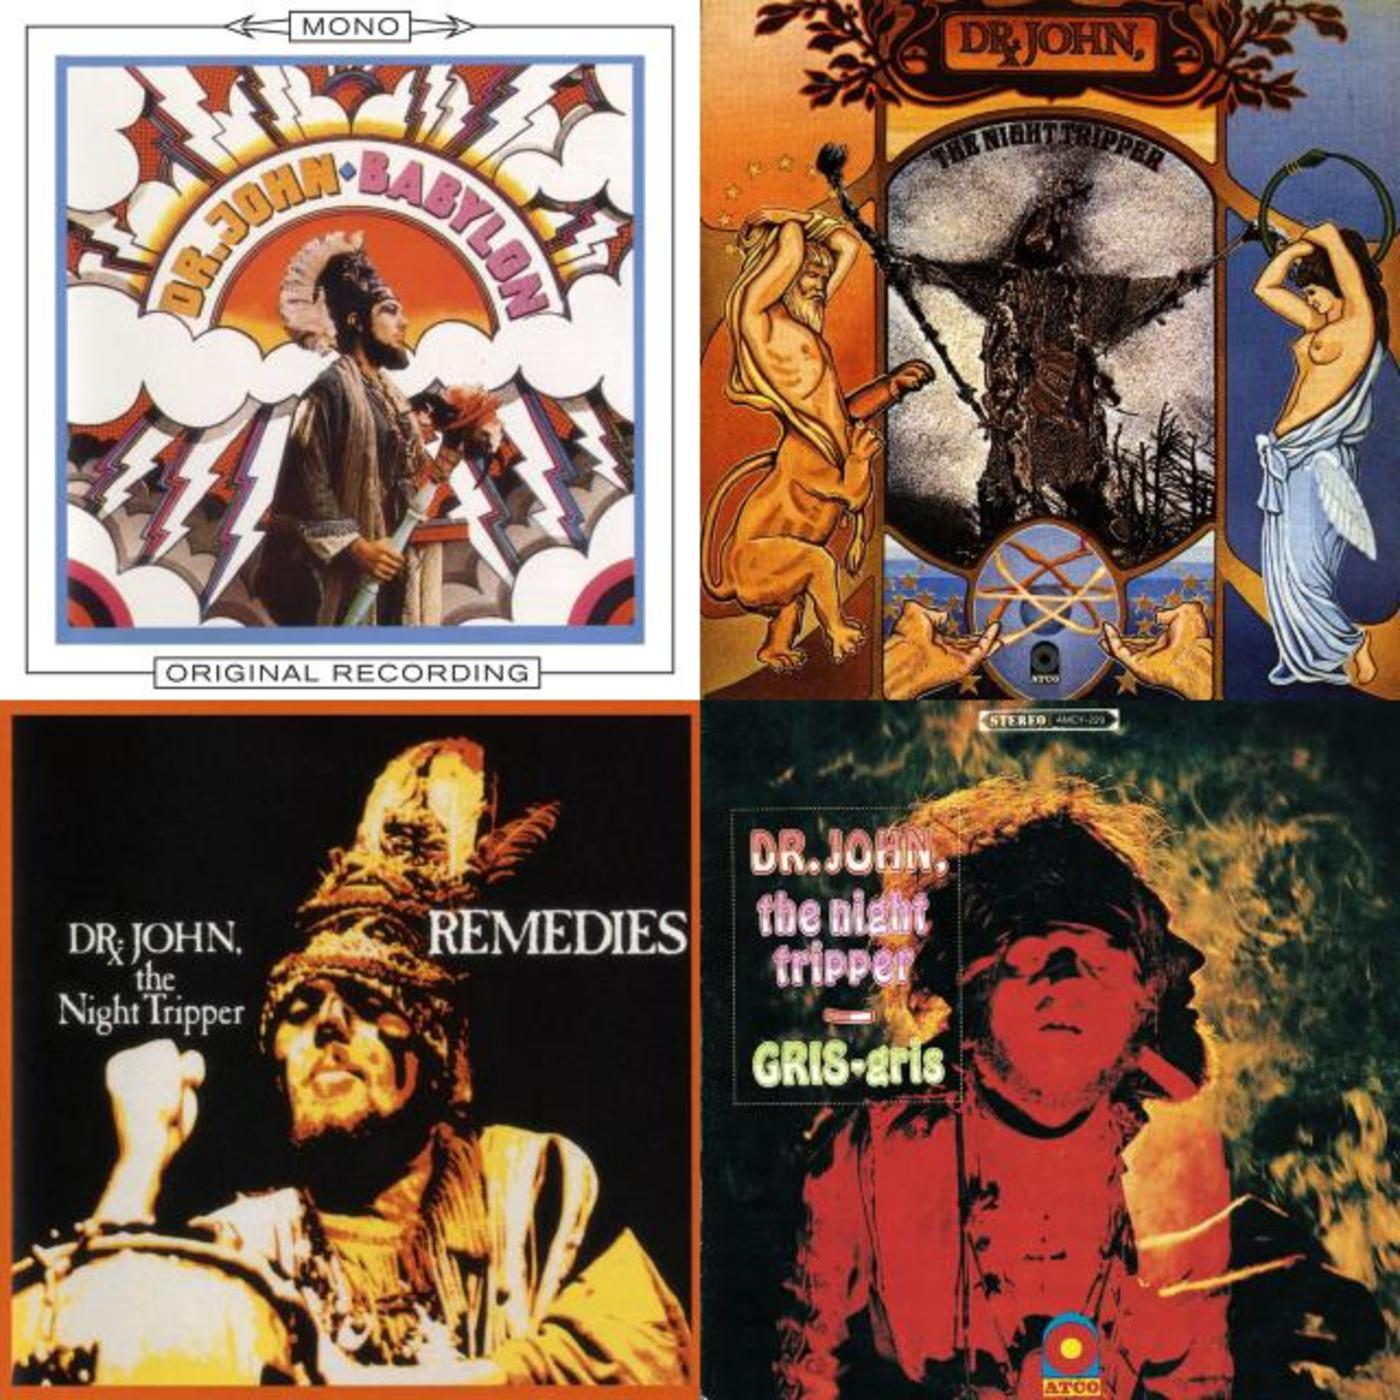 Happy Birthday: Dr. John